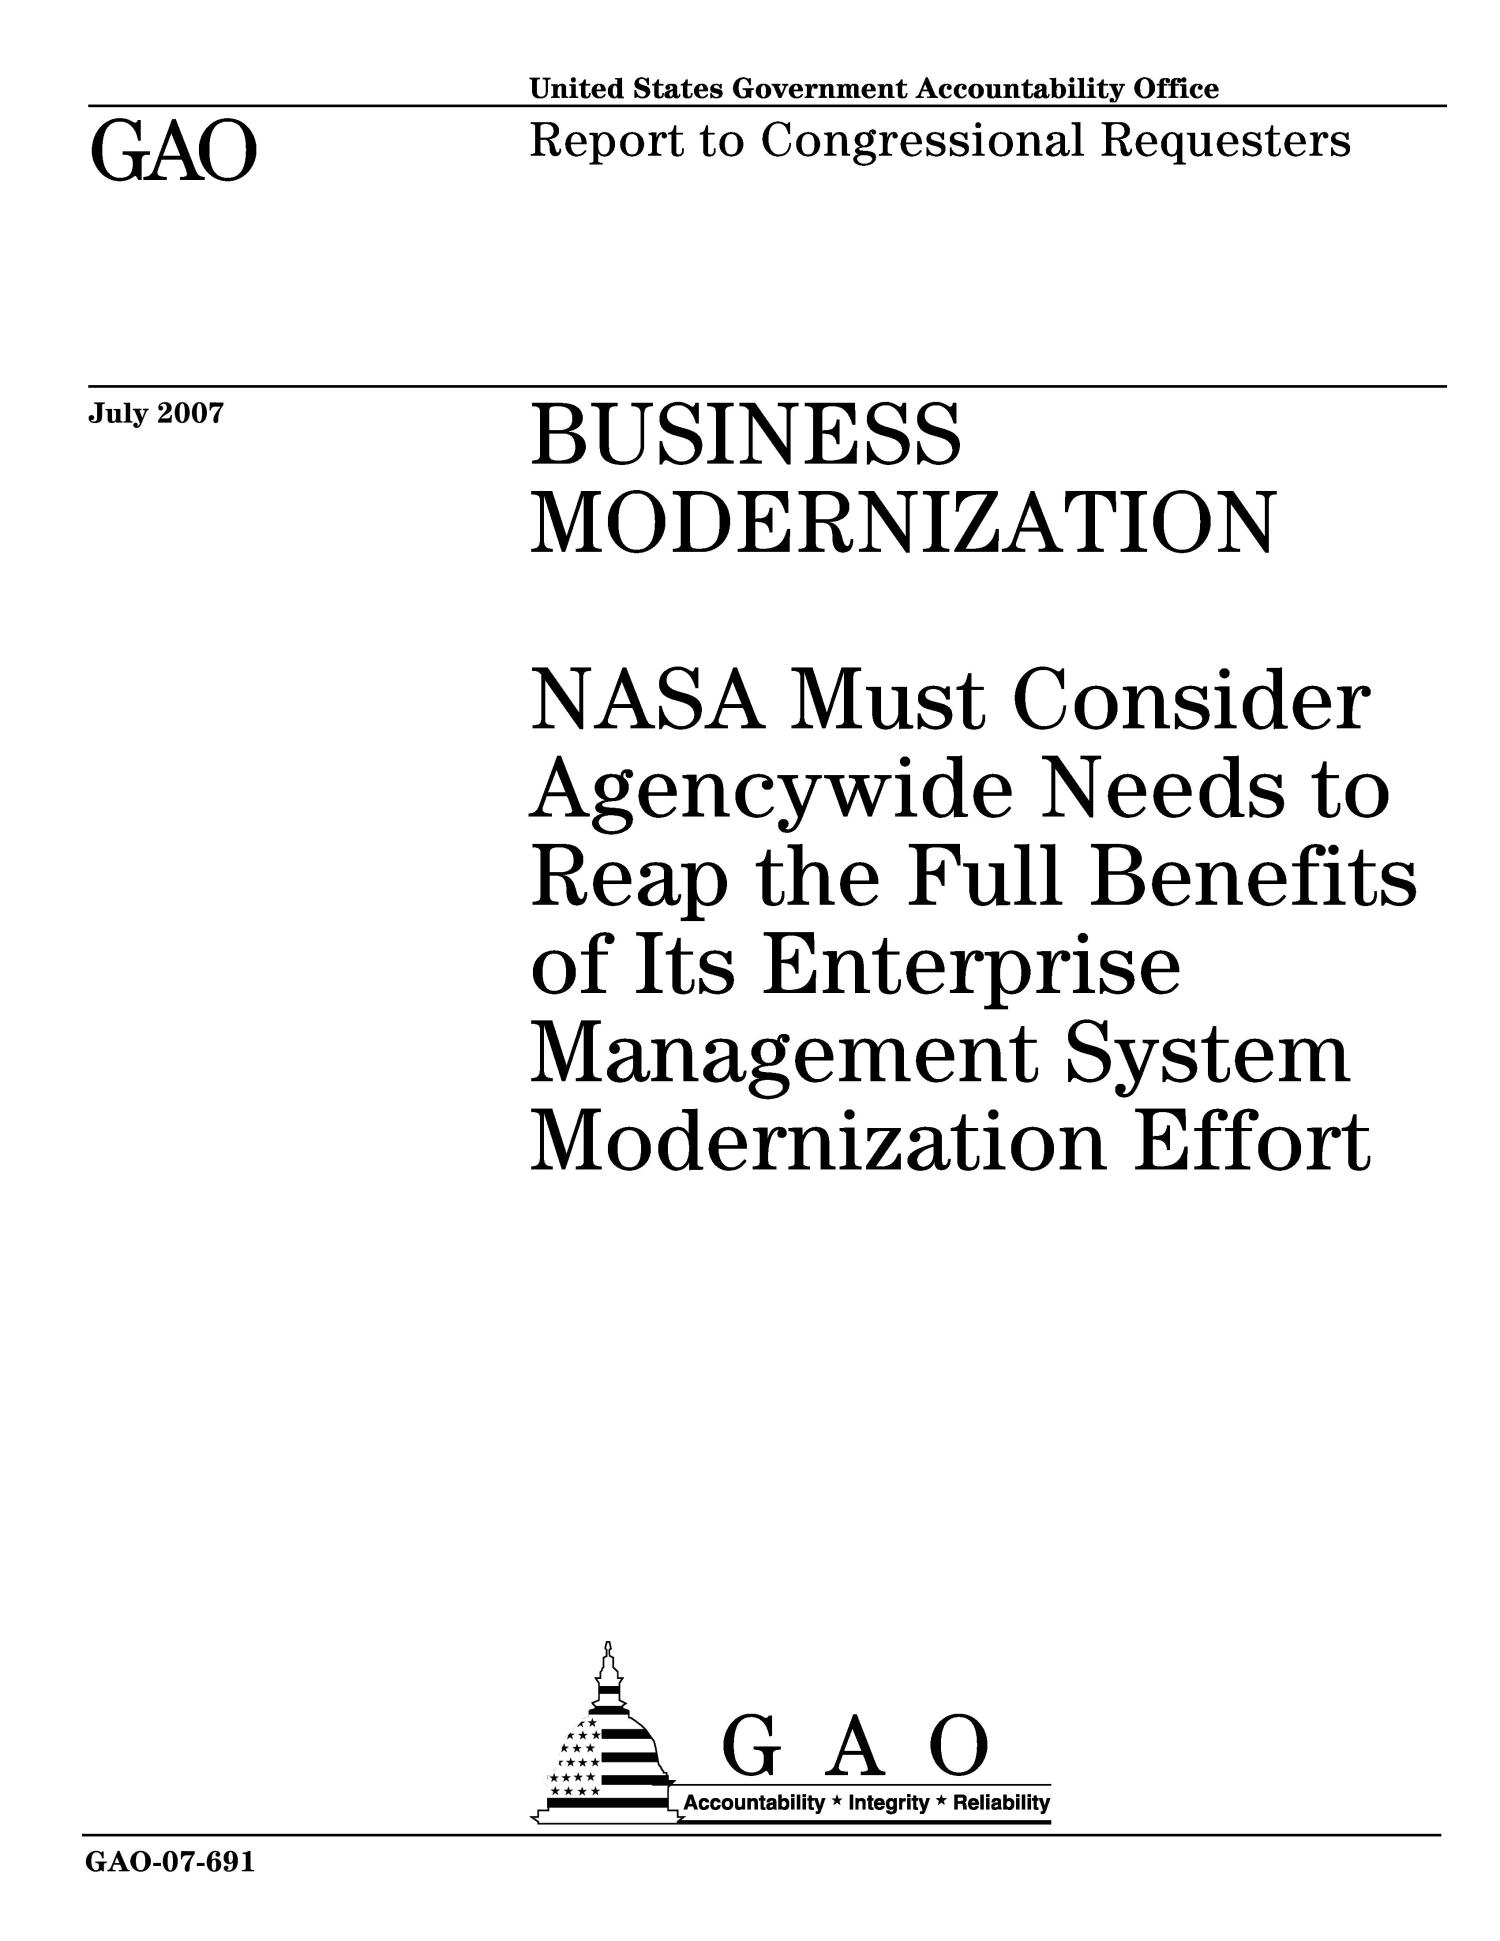 Business Modernization: NASA Must Consider Agencywide Needs to Reap the Full Benefits of Its Enterprise Management System Modernization Effort                                                                                                      [Sequence #]: 1 of 38